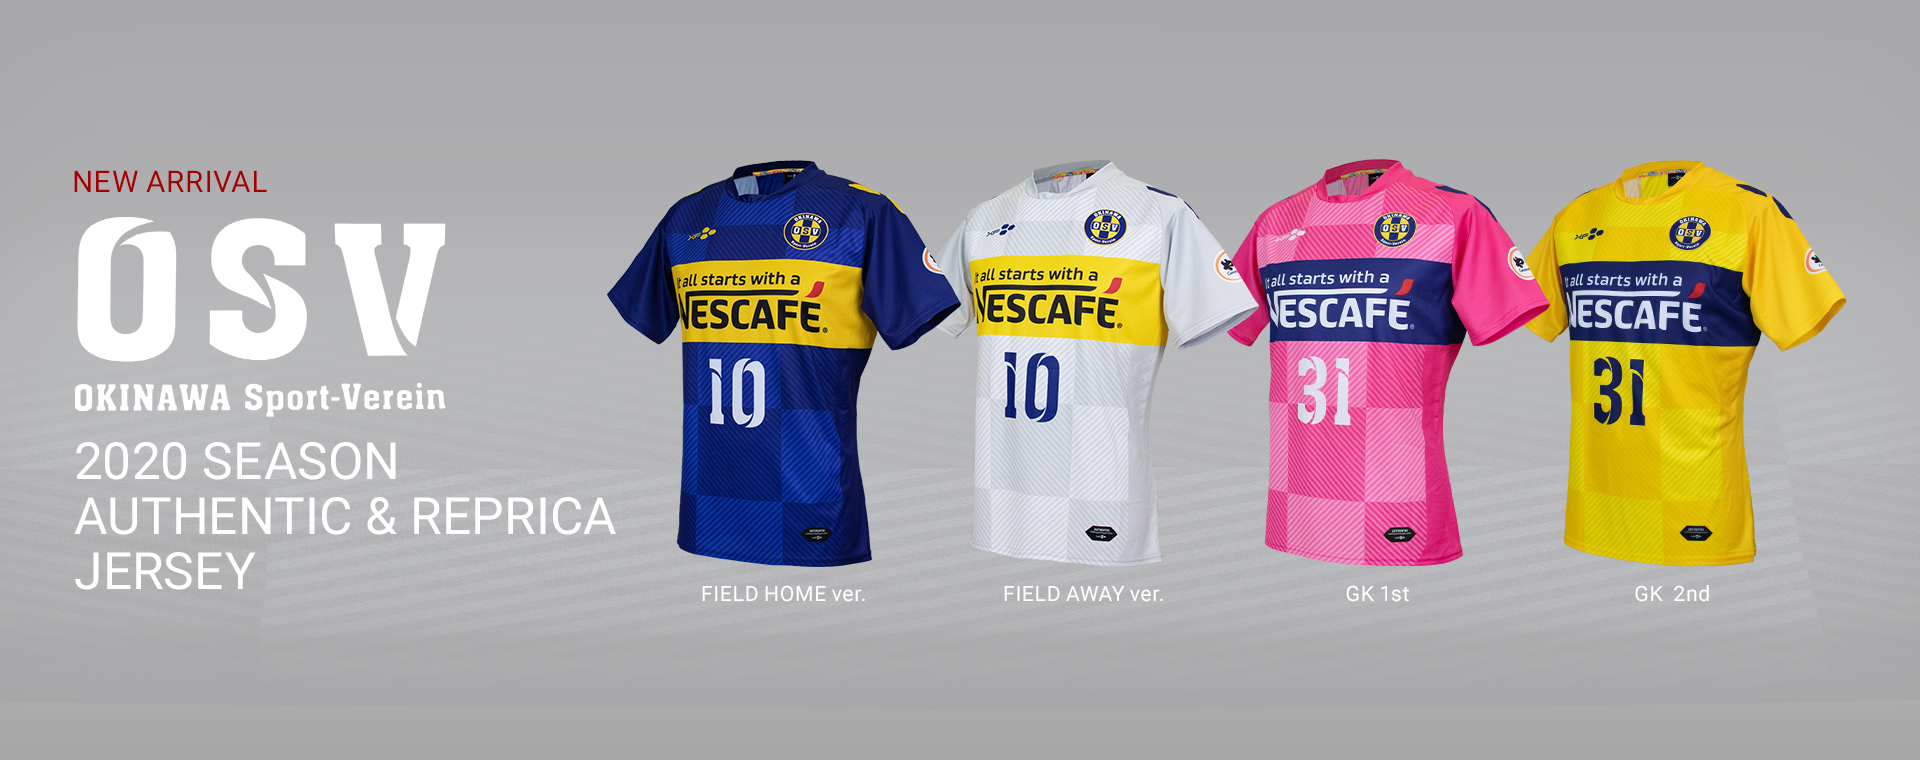 2020 SEASON AUTHENTIC & REPRICA JERSEY